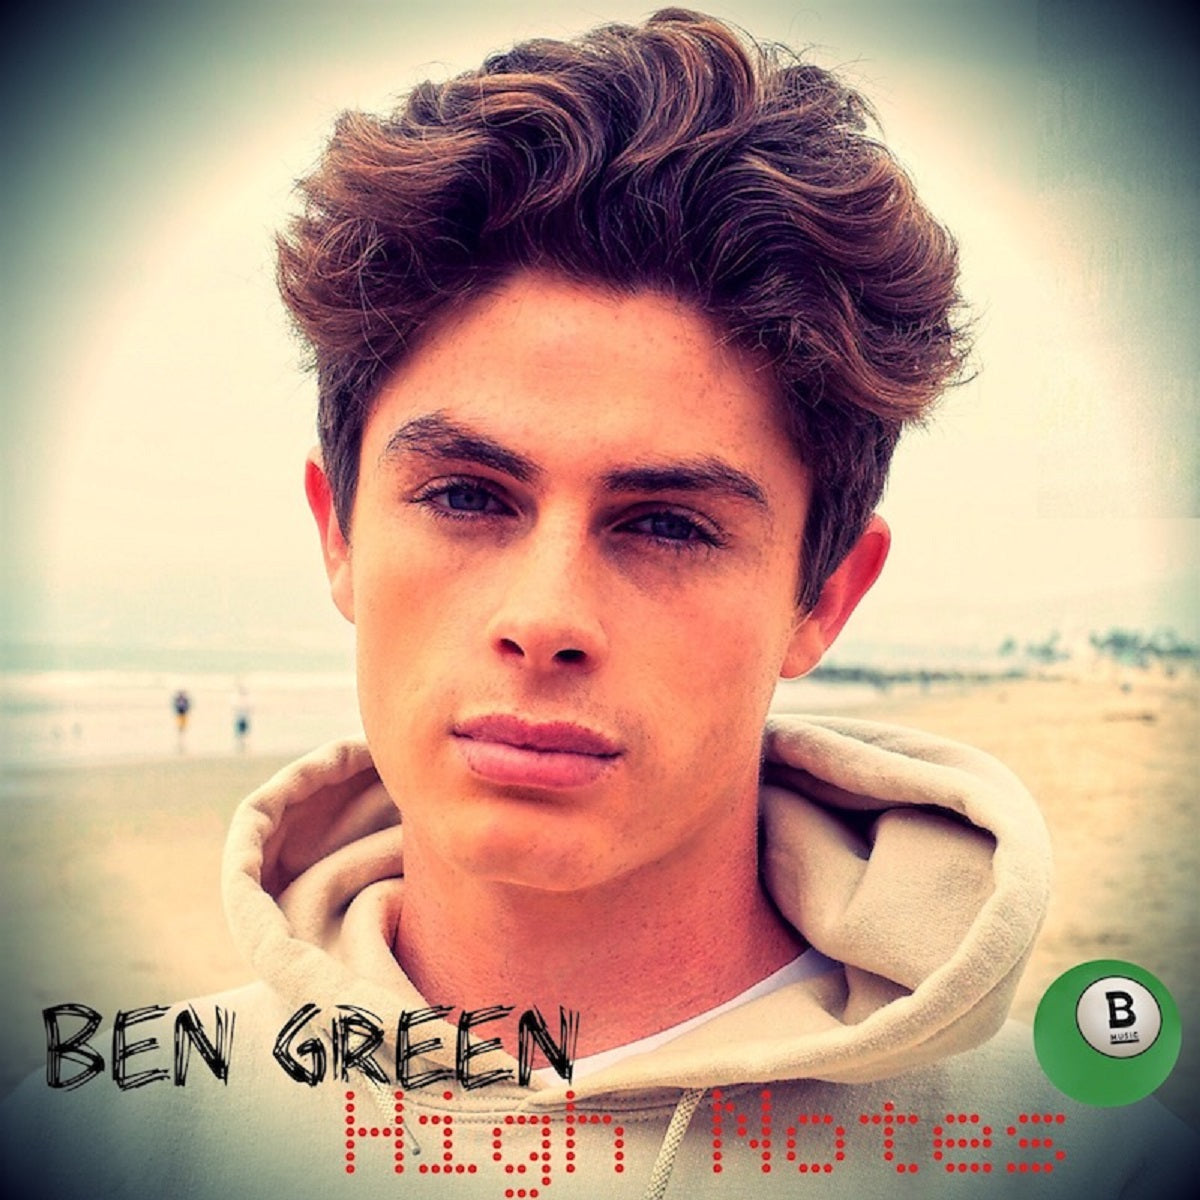 Ben Green – 'High Notes'